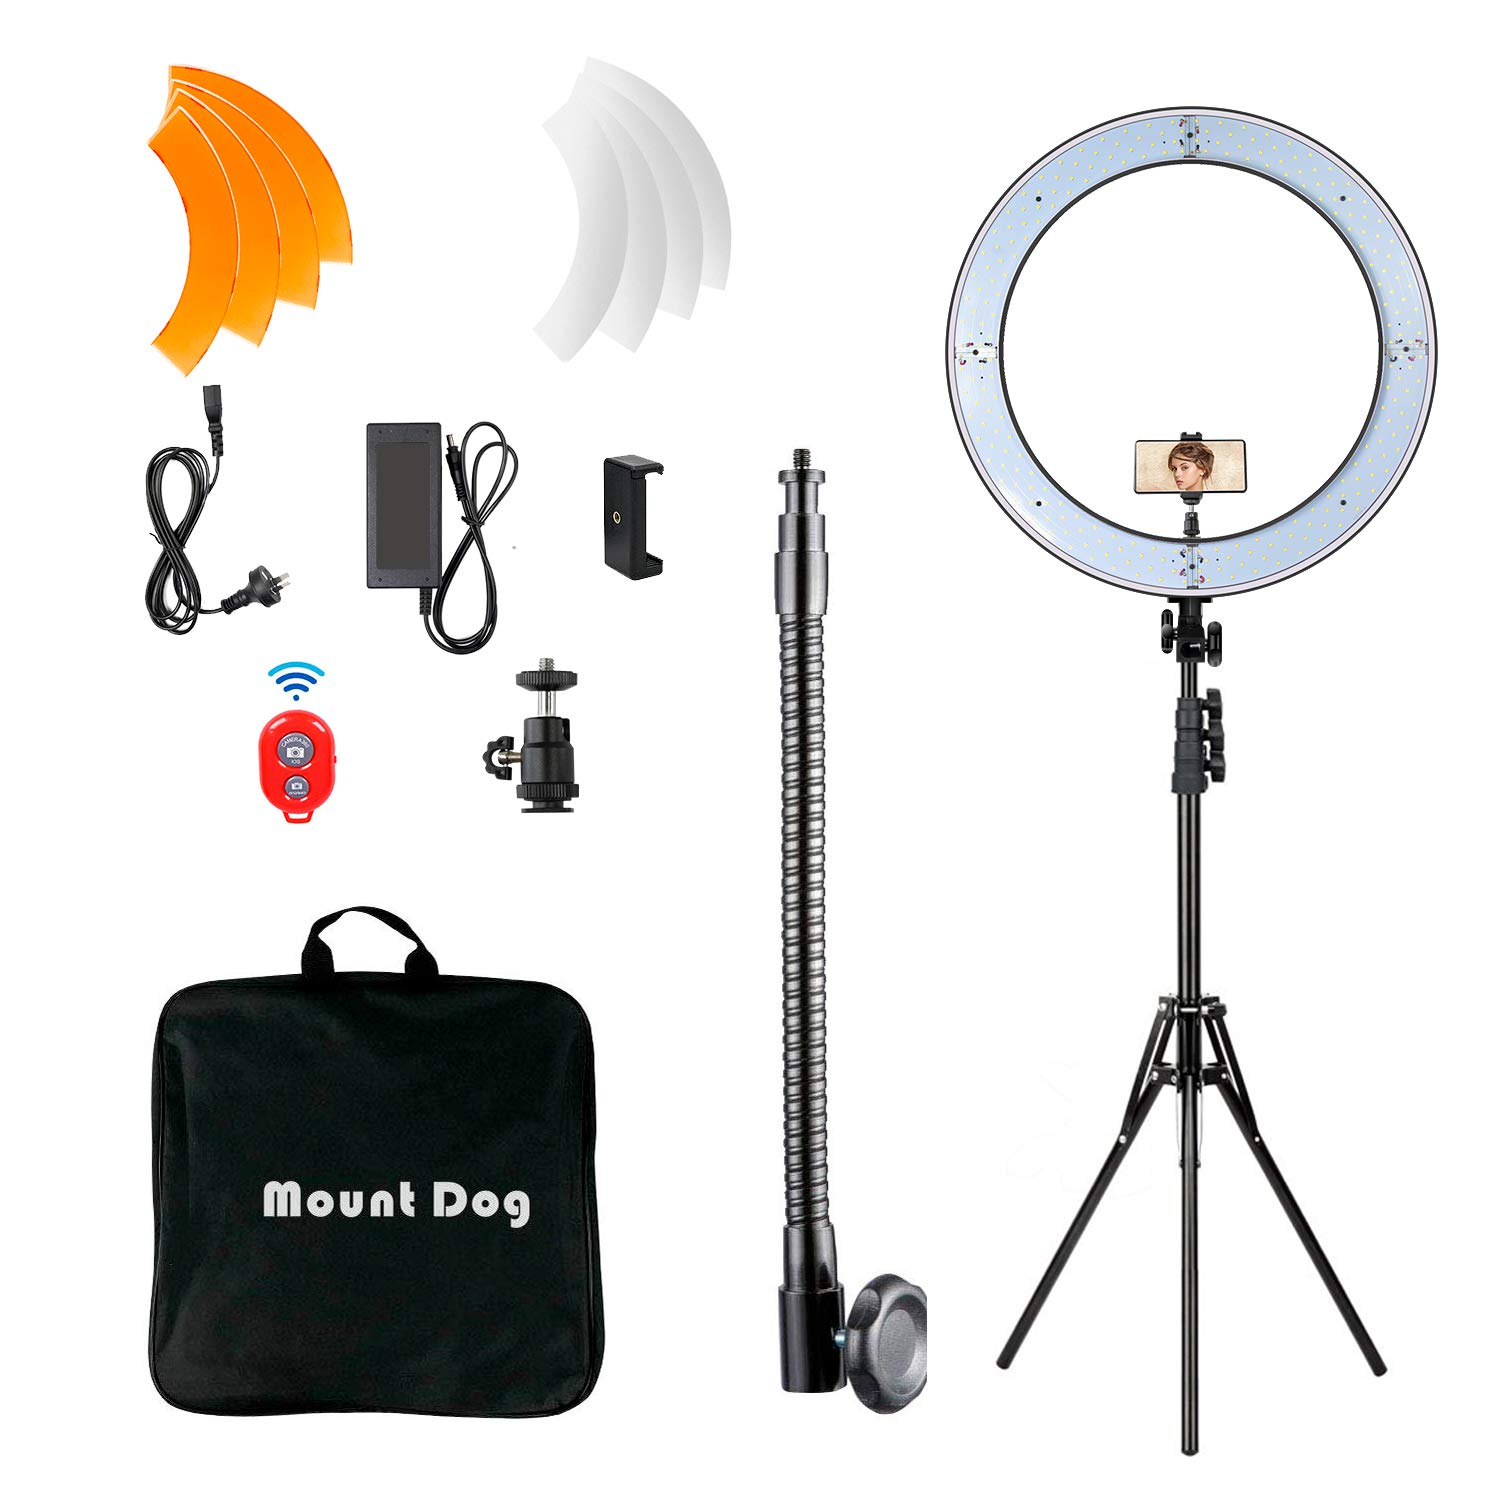 MOUNTDOG 18'' Ring Light Kit 55W Bluetooth LED Ringlight Lighting with Tripod Stand Dimmable 3200K/5500K YouTube Circle Lighting Ringlights for Makeup Video Photography Blogging Portrait by MOUNTDOG